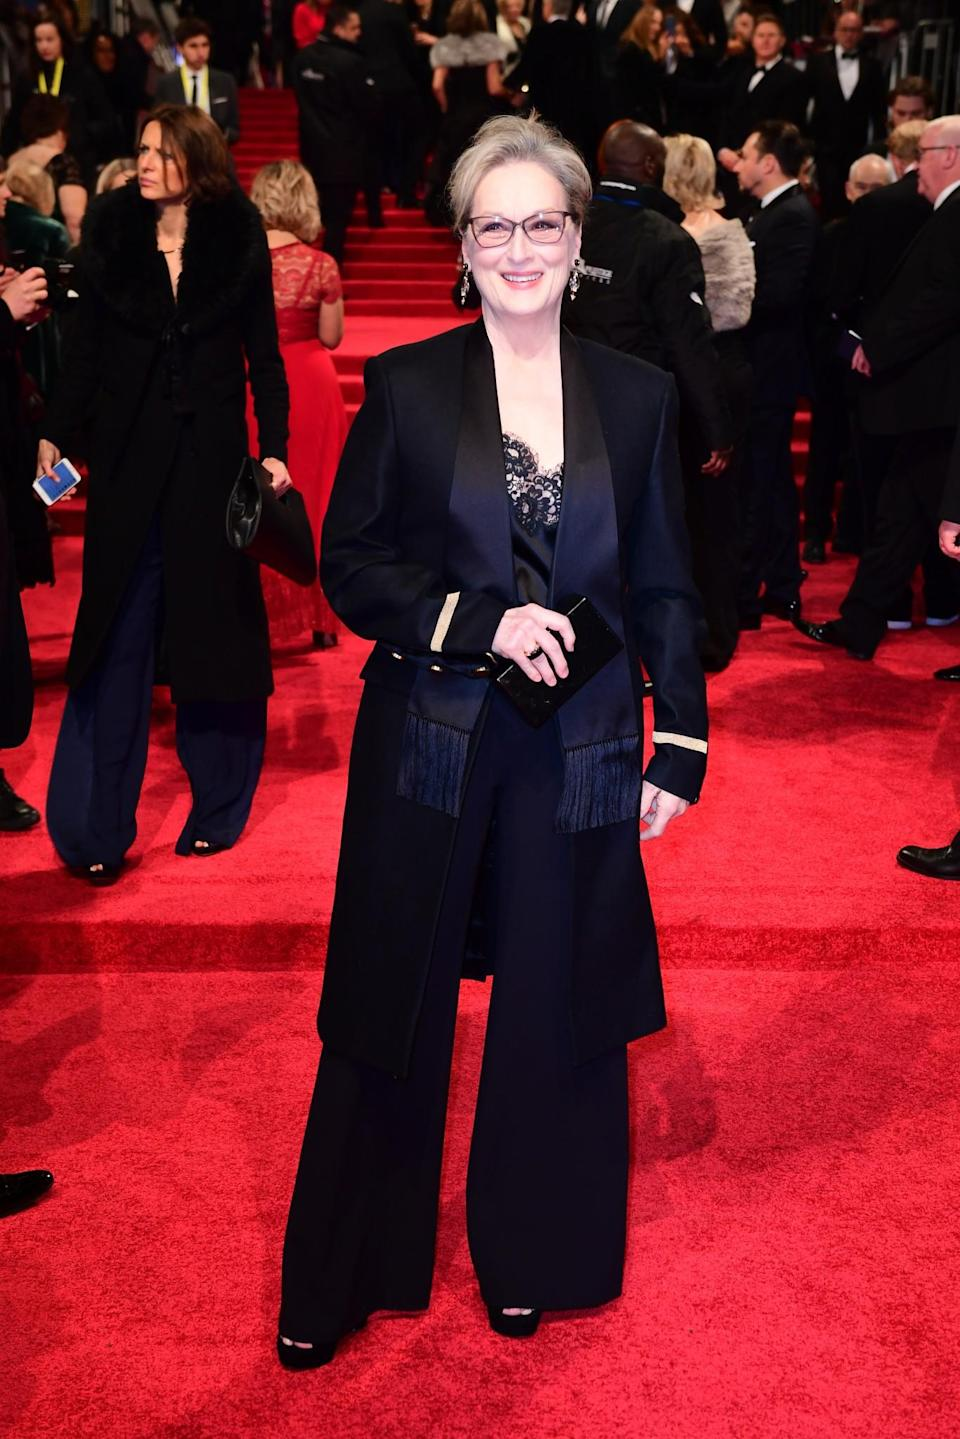 <p>At the 2017 Bafta's Meryl opted for a classic suit, complete with shoulder padded jacket. YAAAS Queen. [Photo: PA] </p>